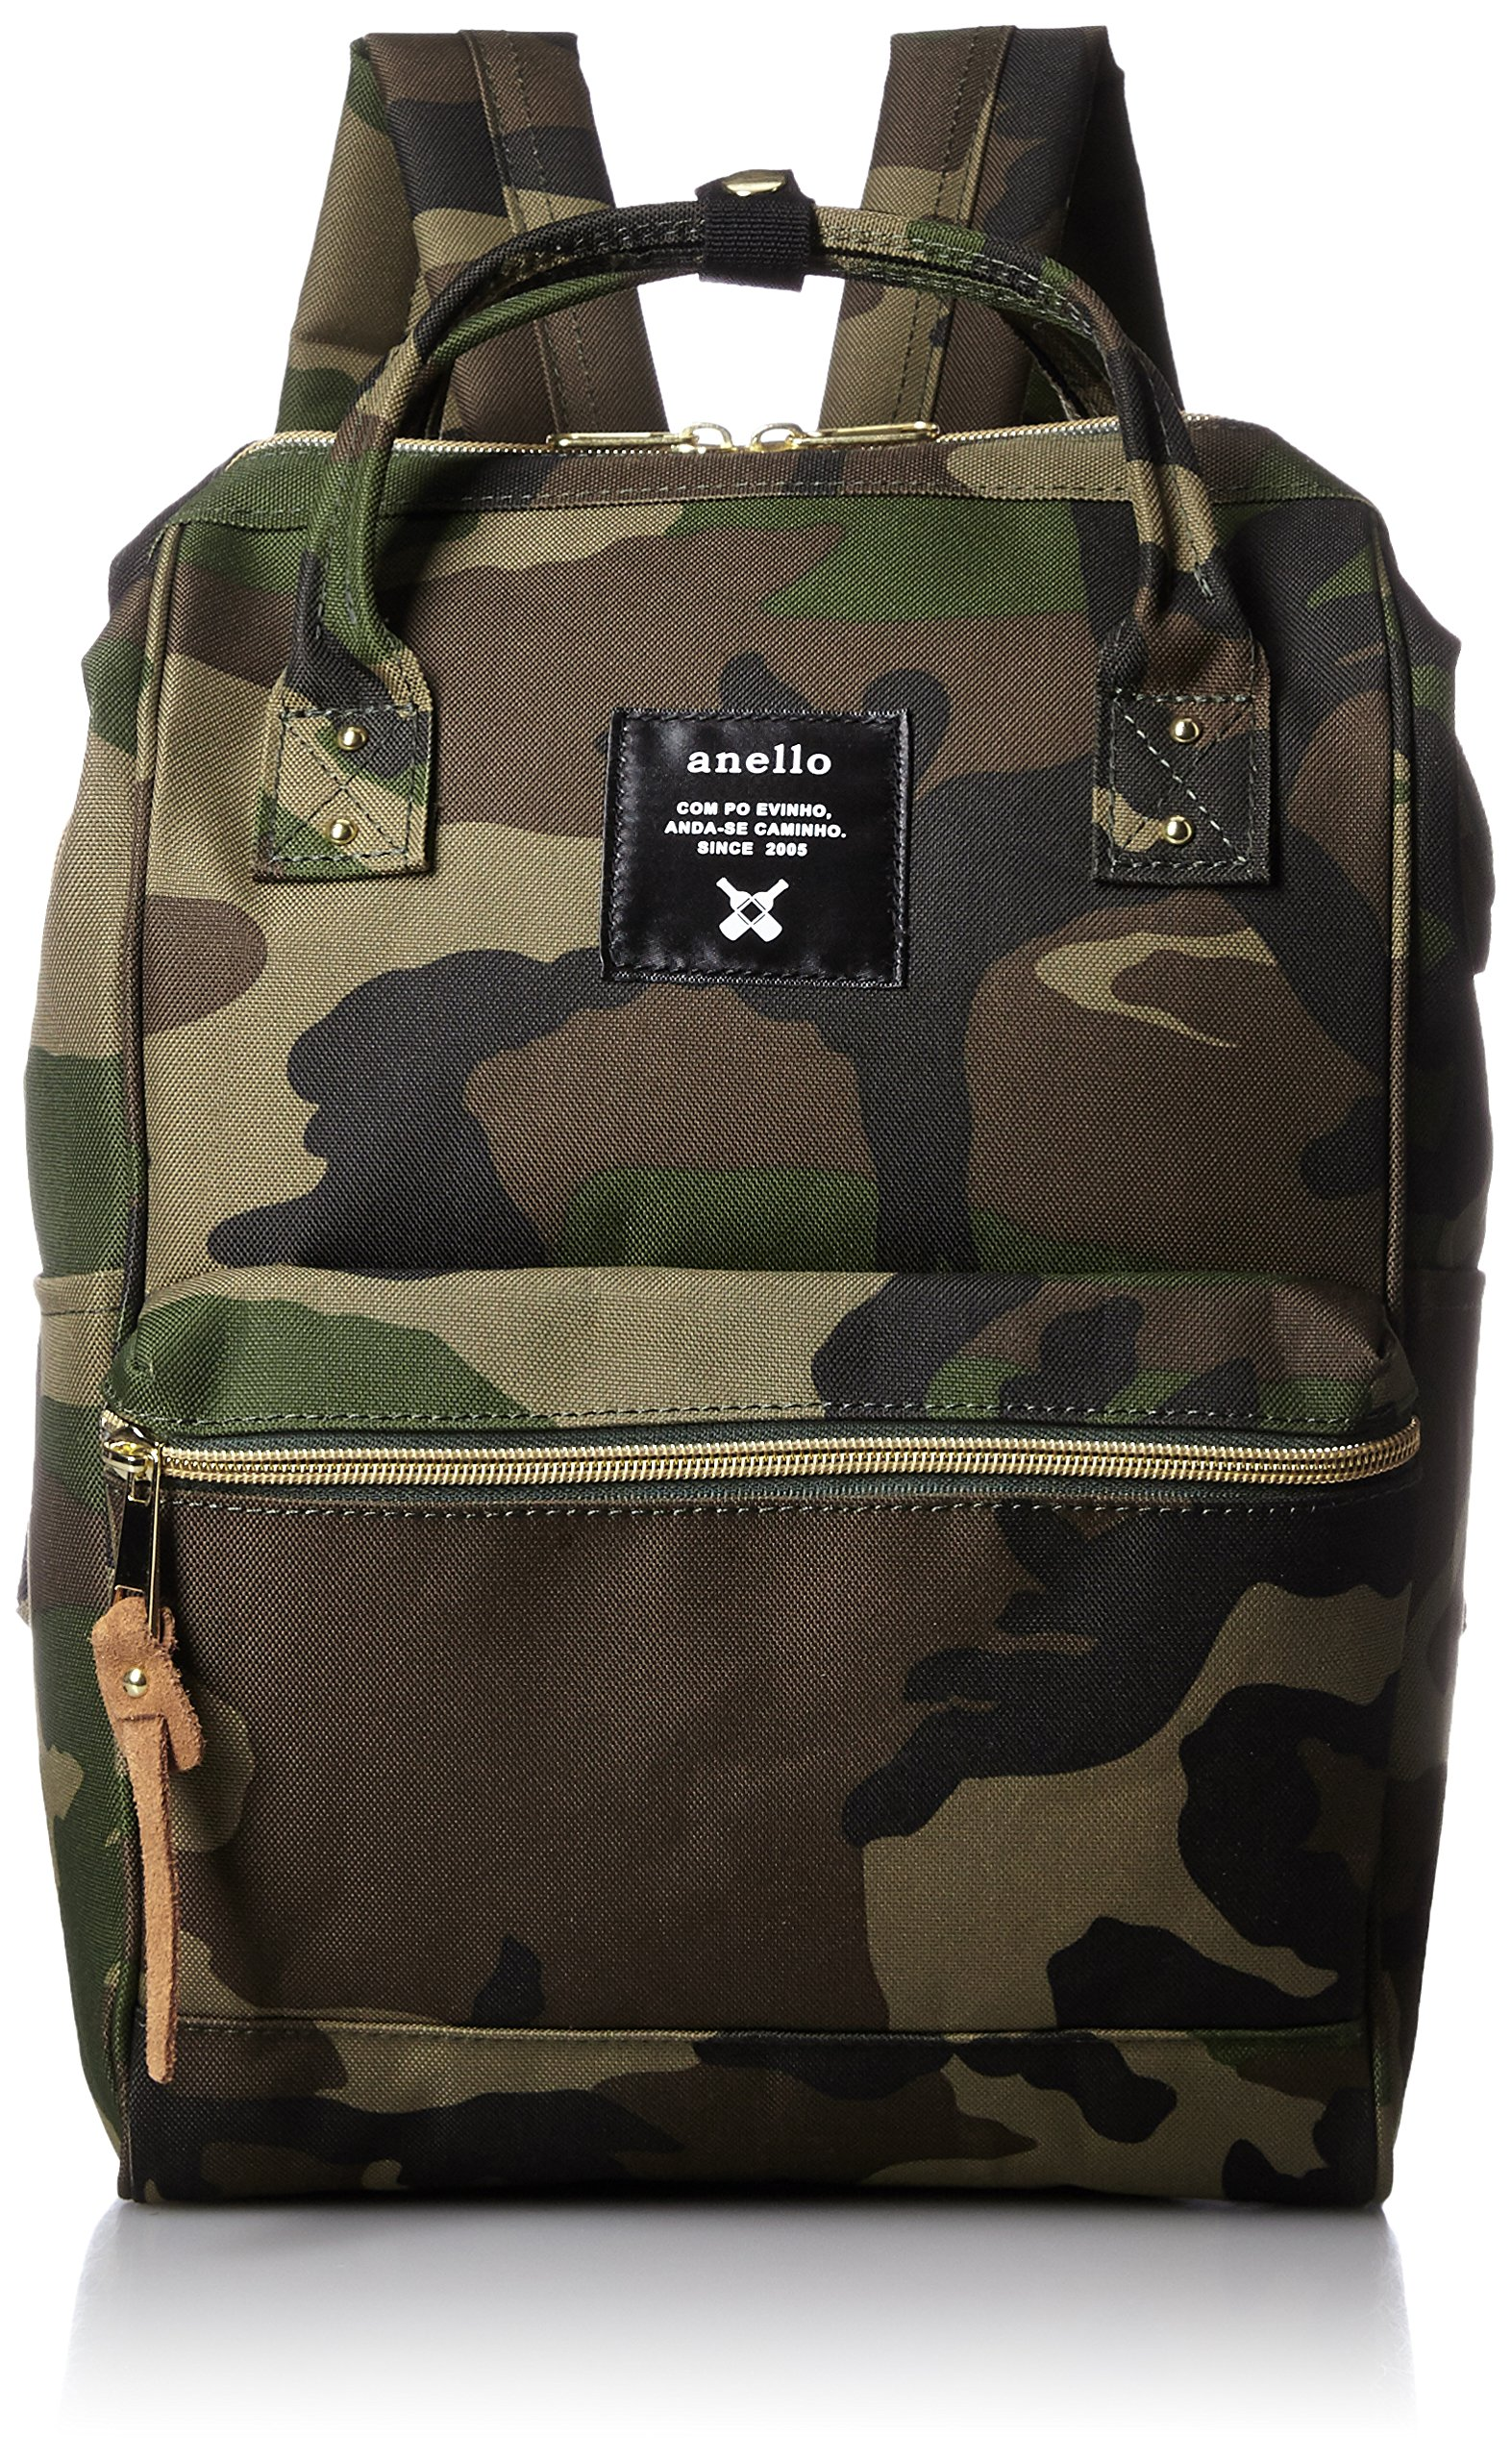 anello #AT-B0197B small backpack with side pockets camo